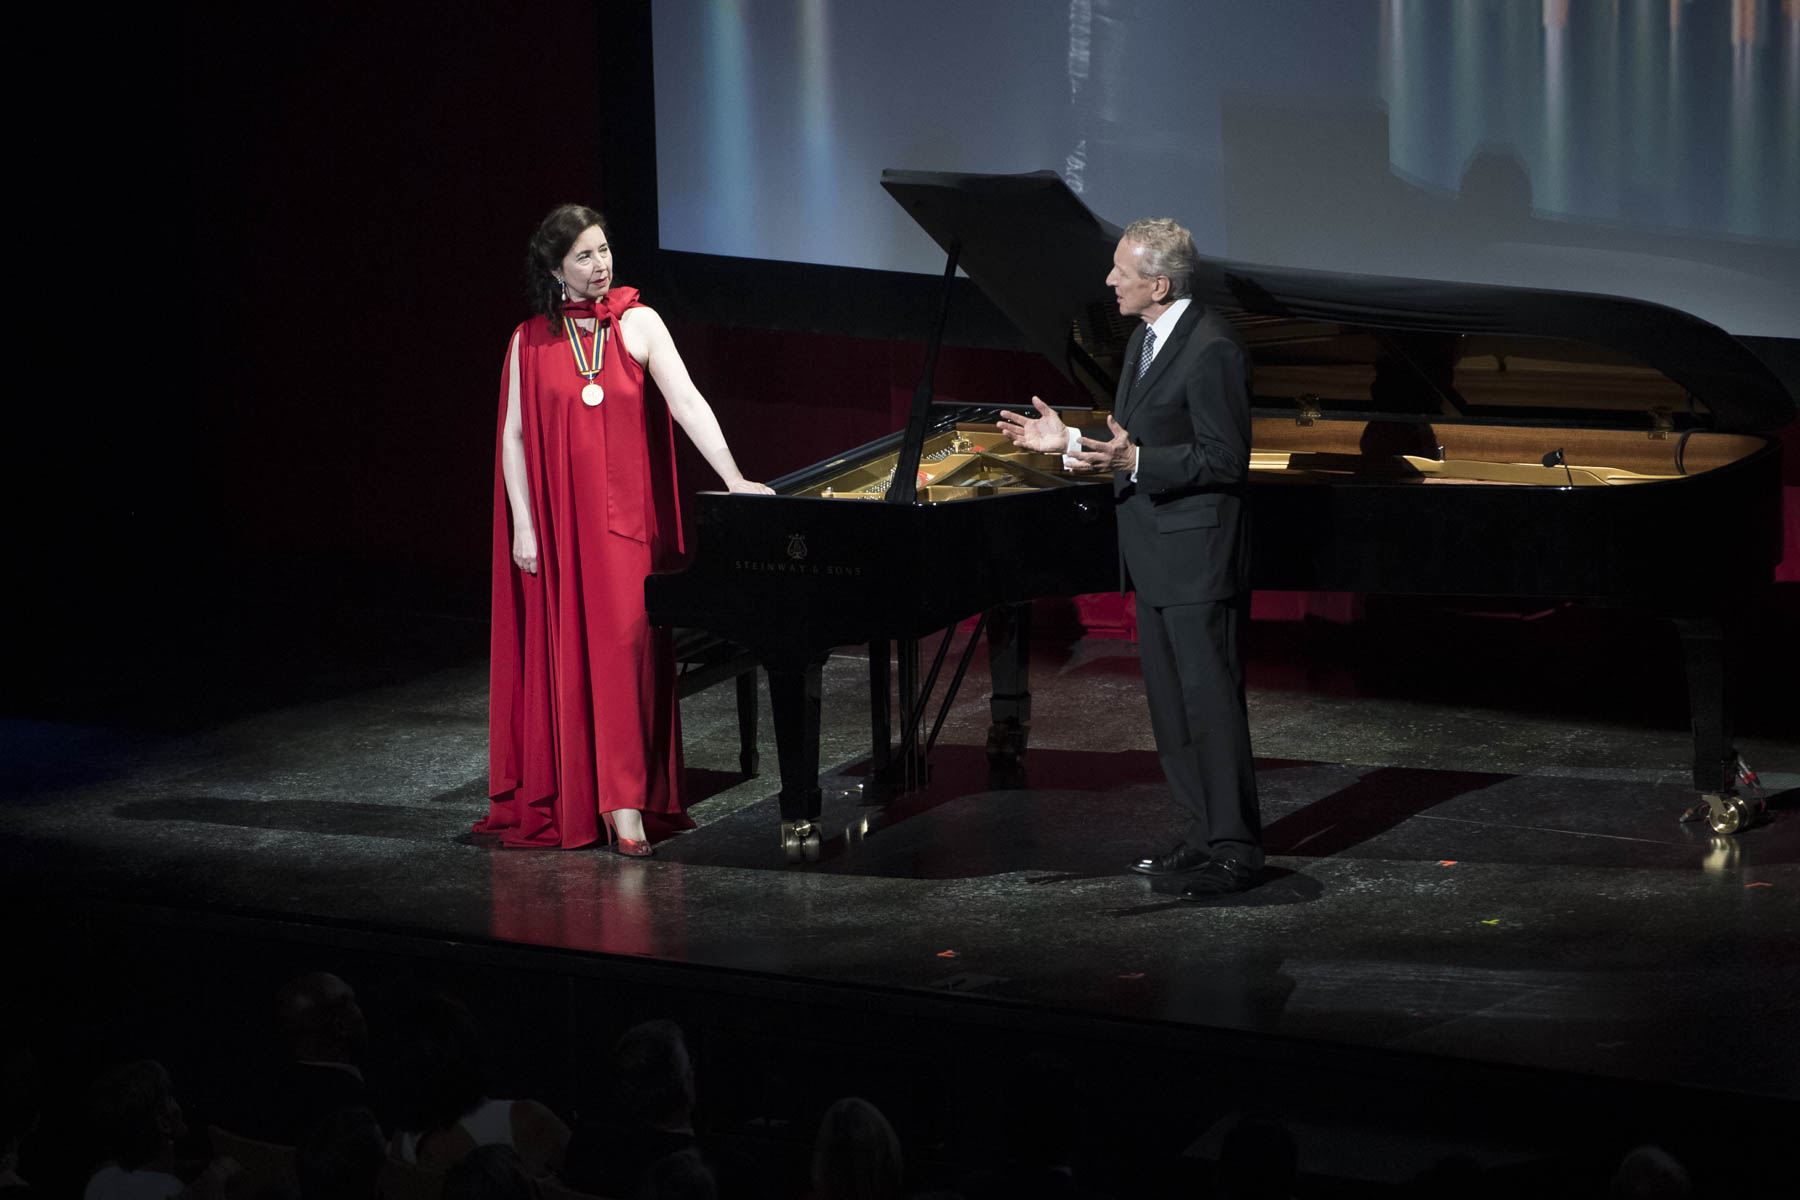 Eric Friesen presented the tribute to pianist Angela Hewitt.